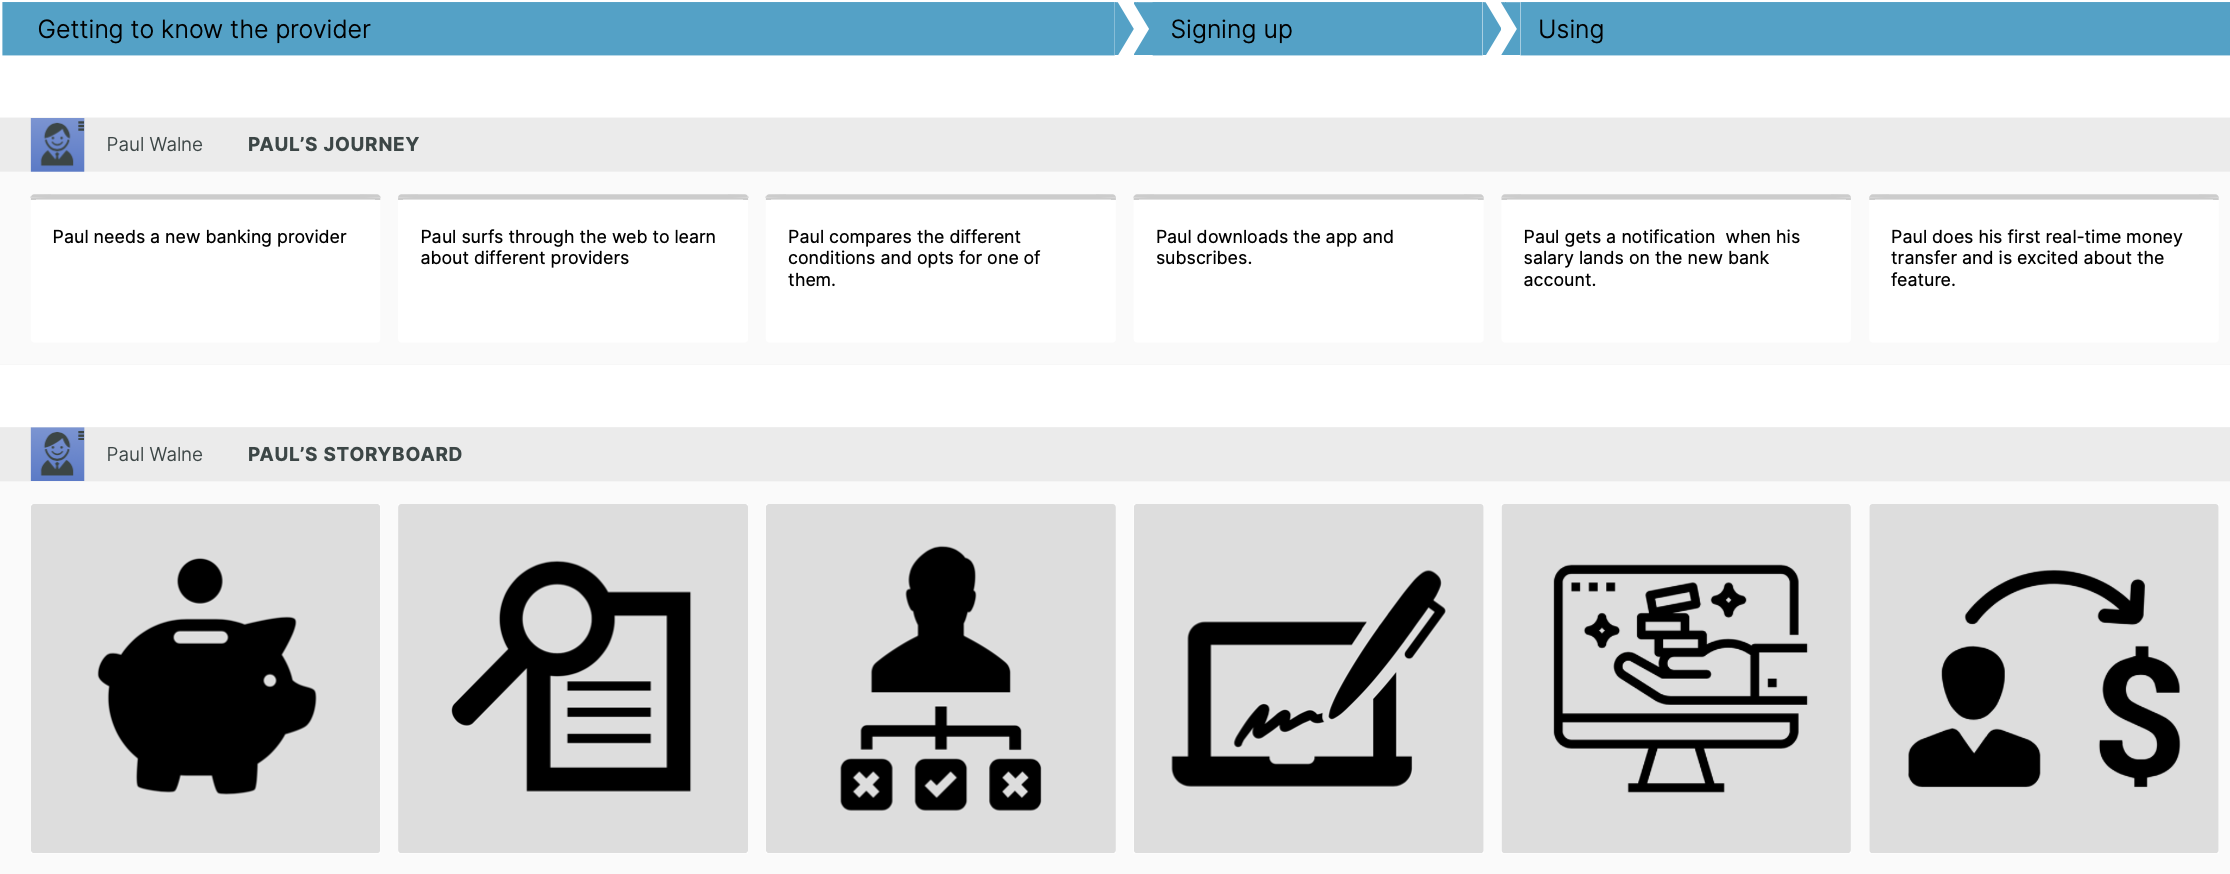 journey map in the banking sector example